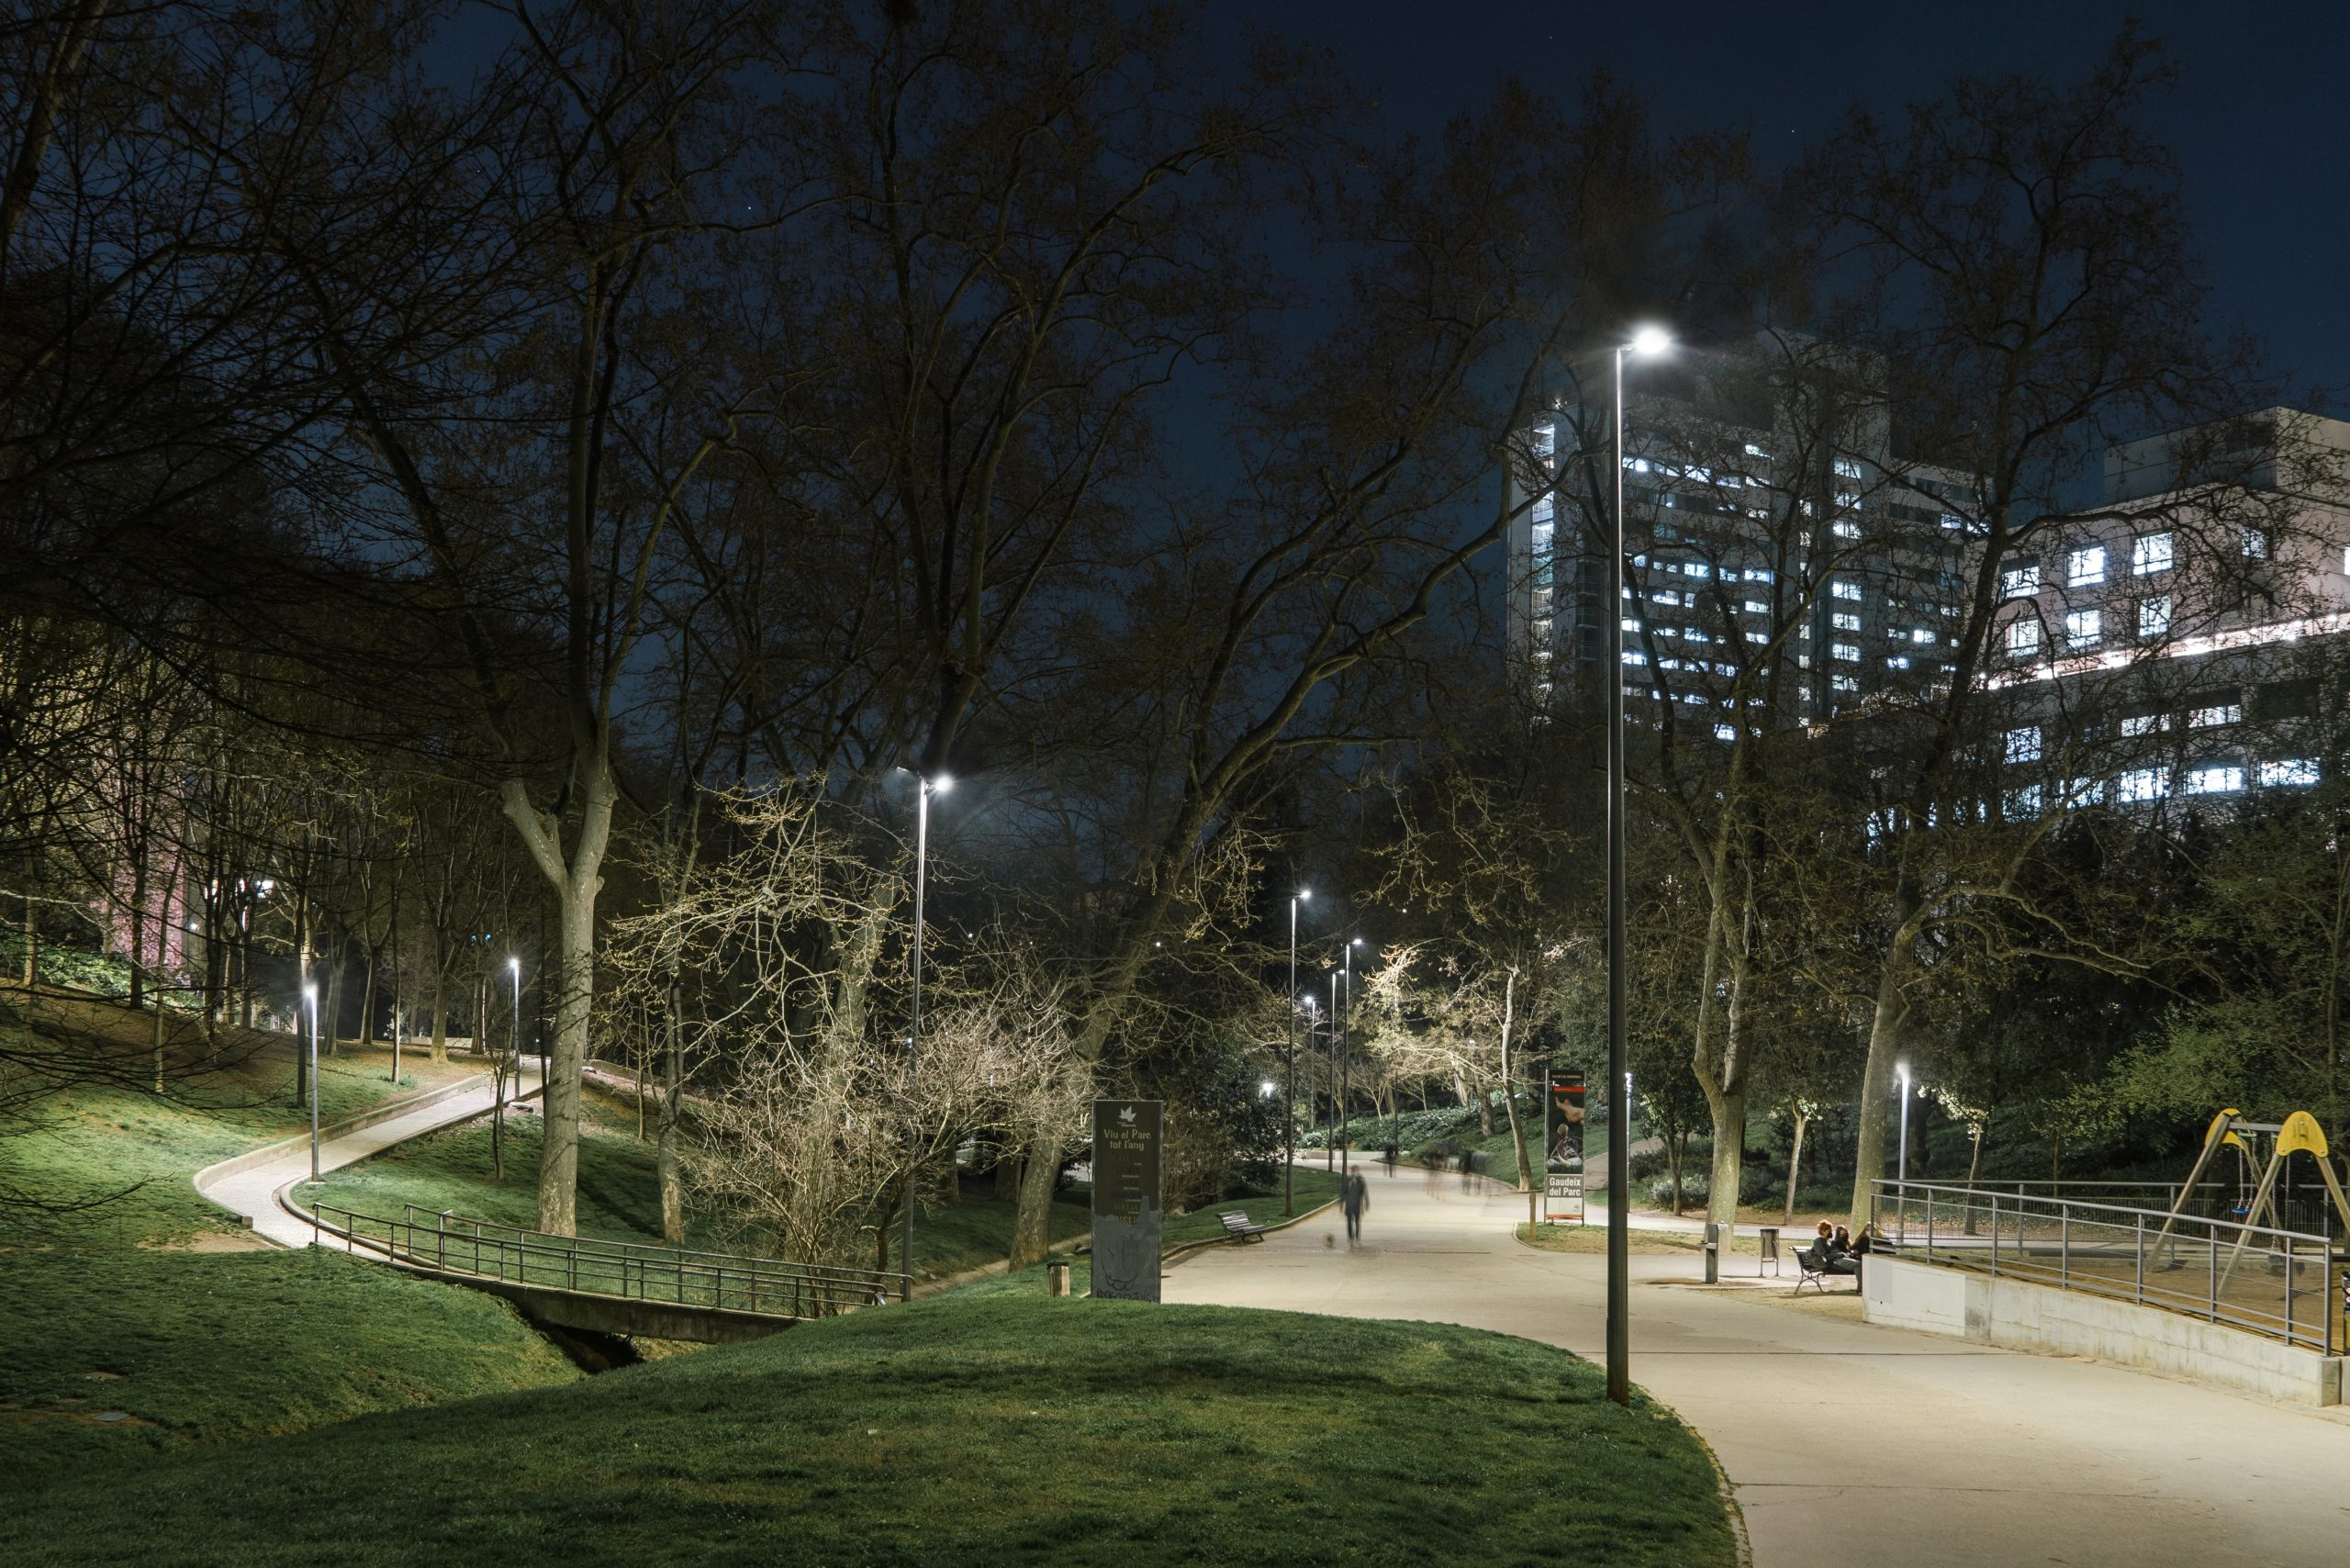 Modern Lighting for a Better Quality of Life